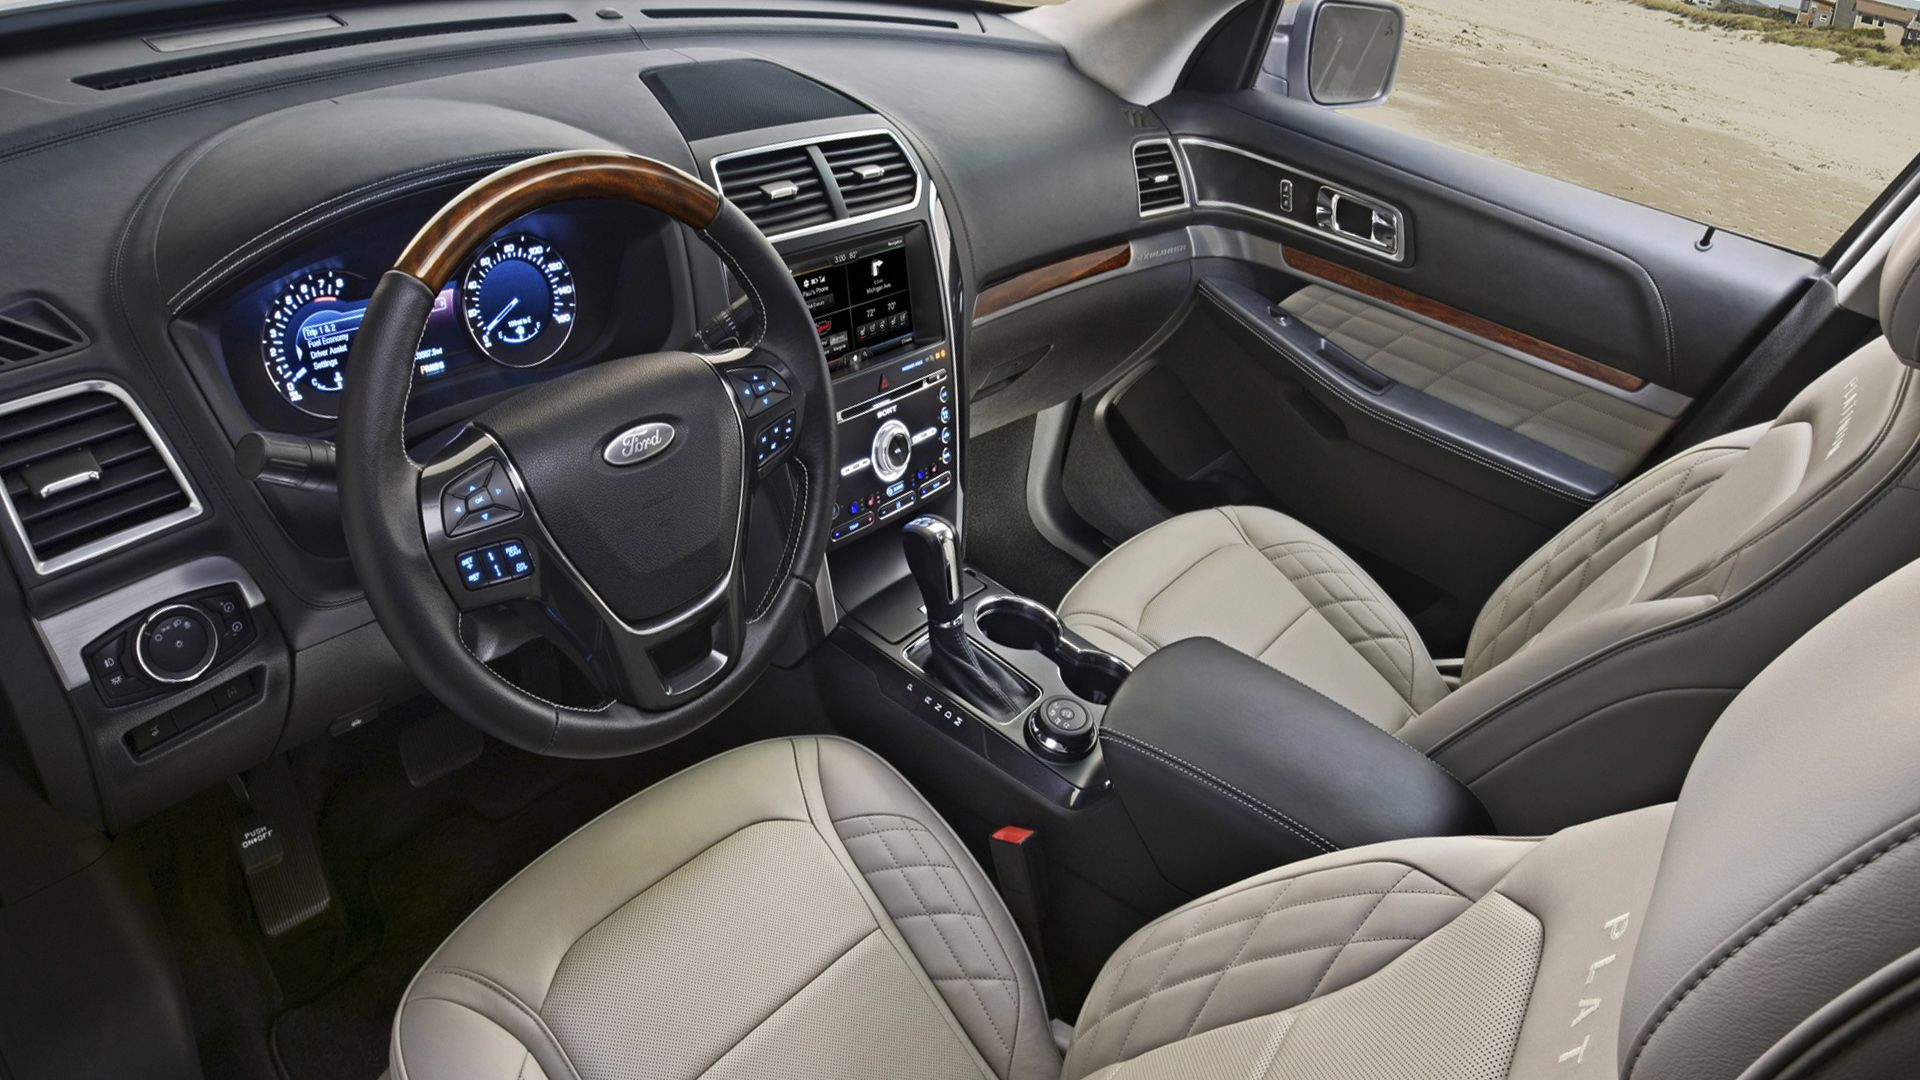 hight resolution of 2019 ford explorer interior and technology